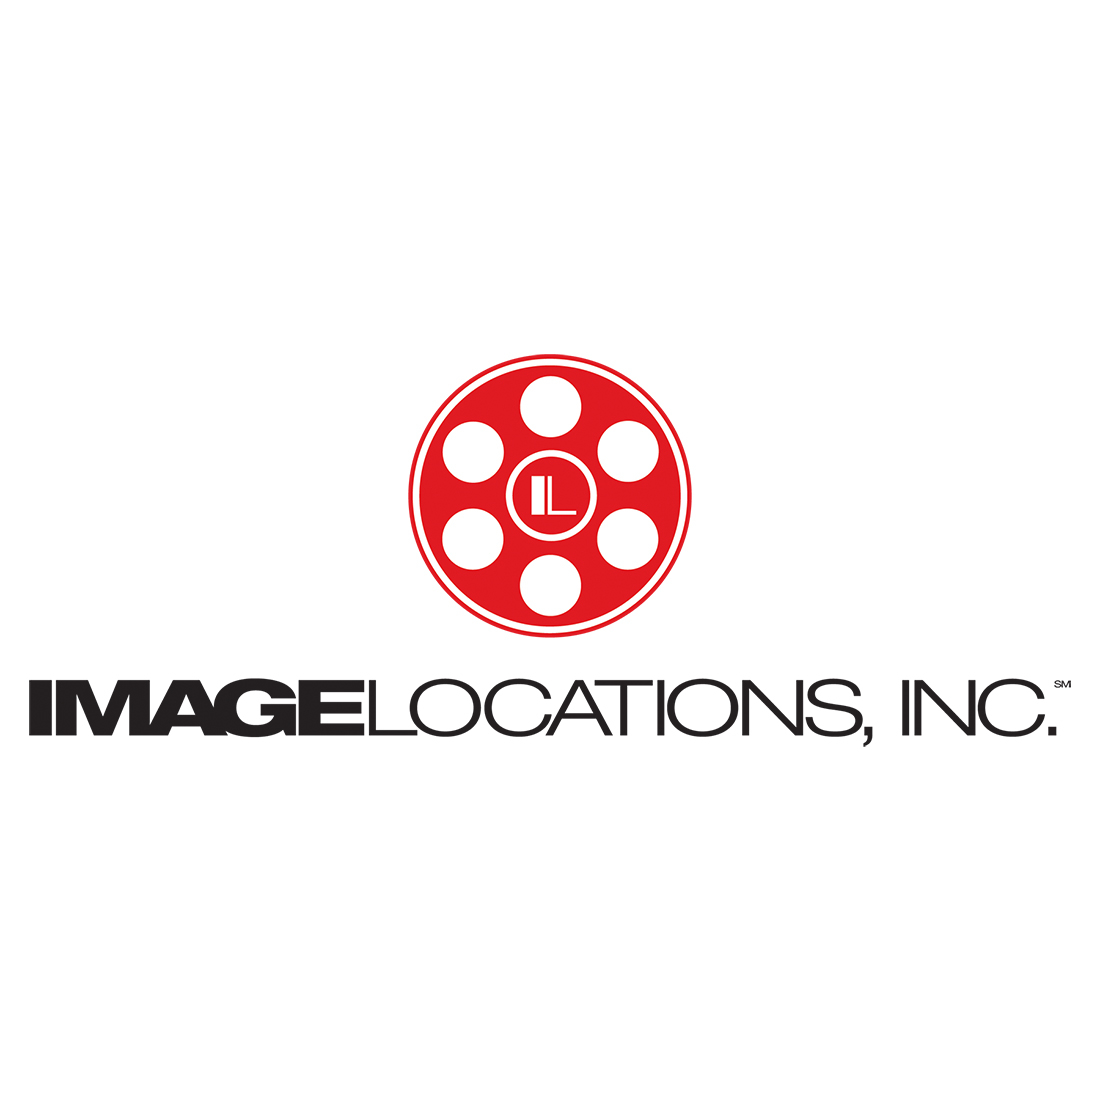 Image Locations Inc.